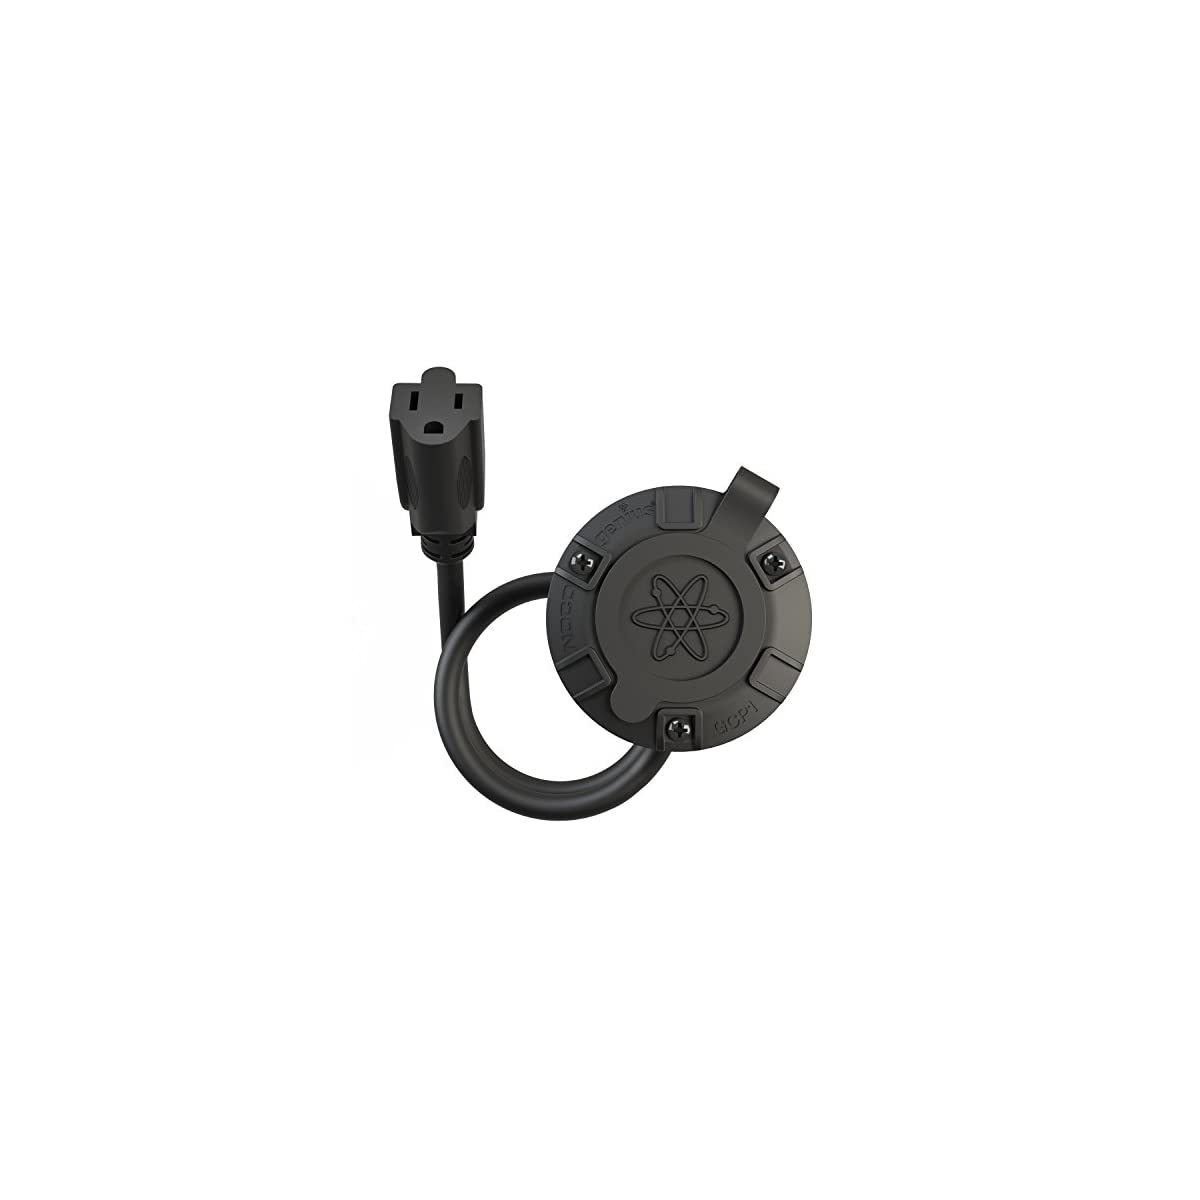 NOCO Black GCP1 15 Amp 125V AC Port Plug with 16-Inch Integrated Extension Cord